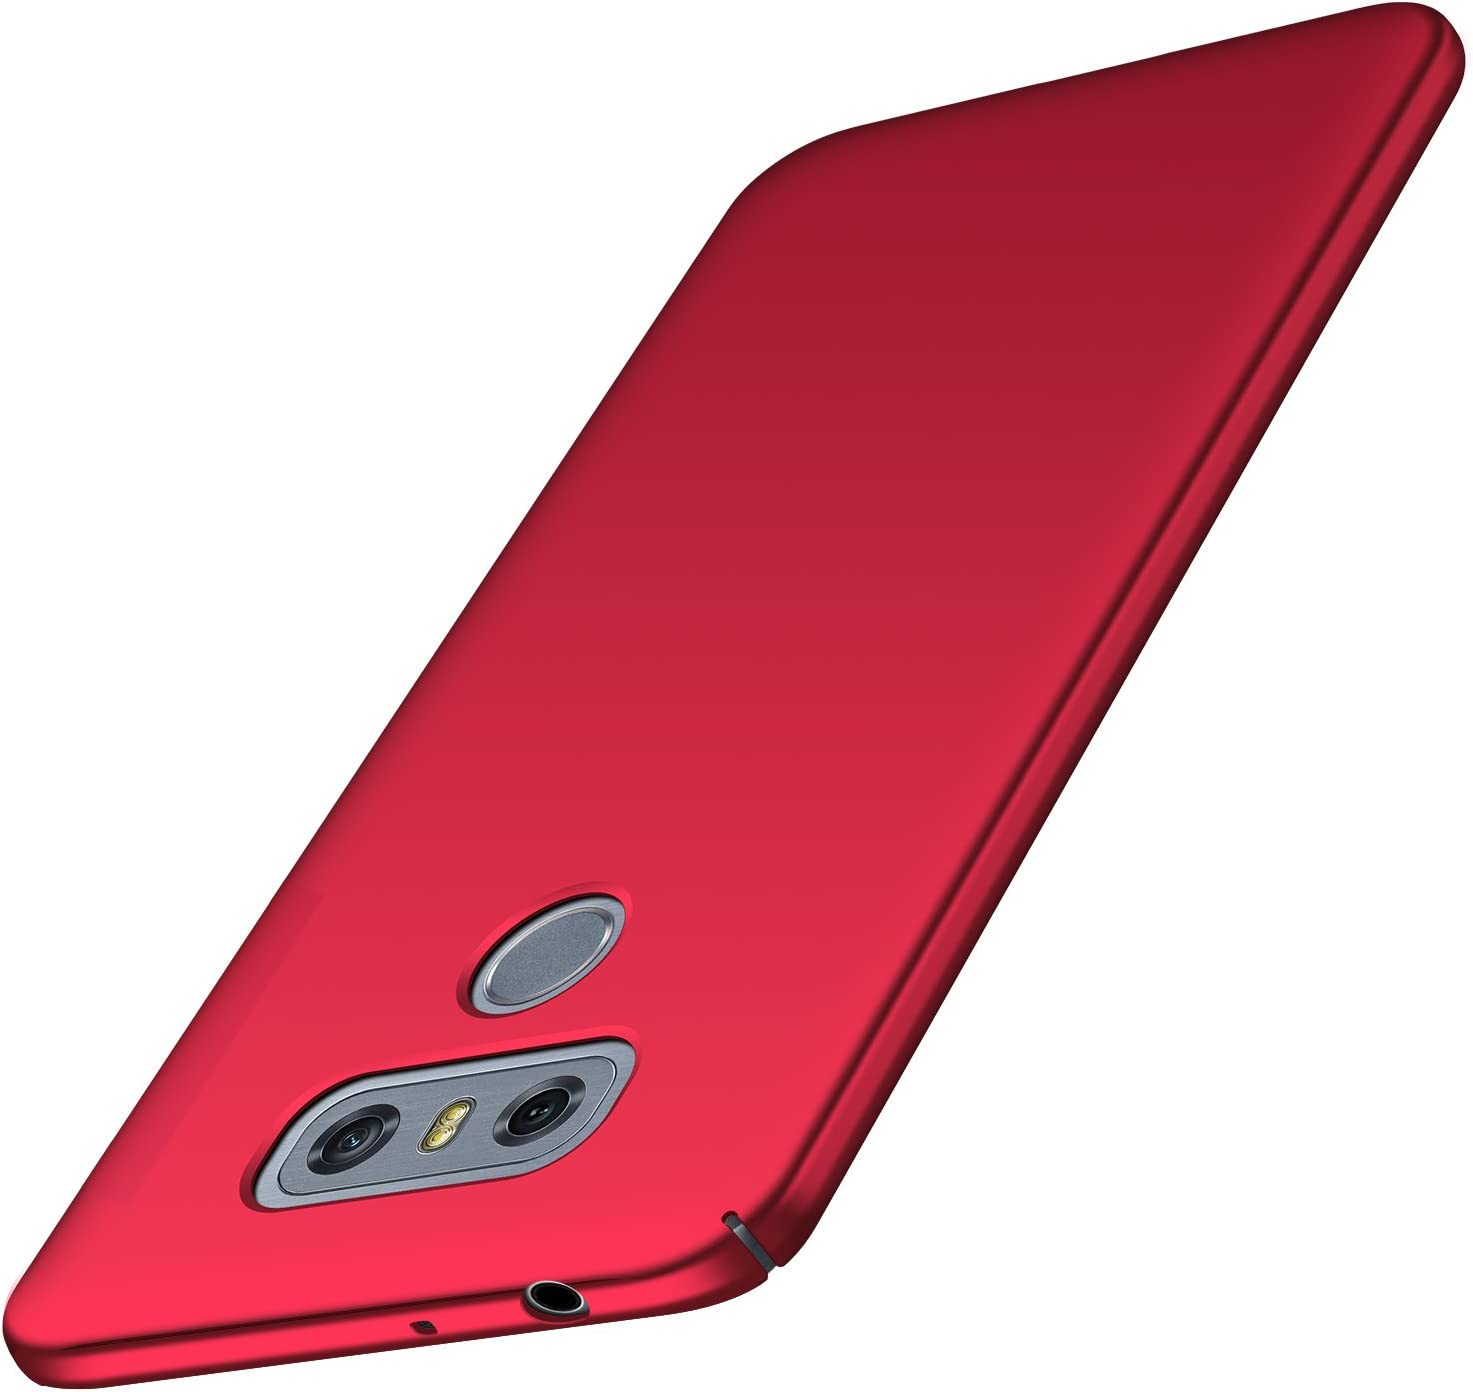 BANZN Case for LG G6 Ultra-Thin Premium Material Slim Full Protection Cover for LG G6 2017 (Red)